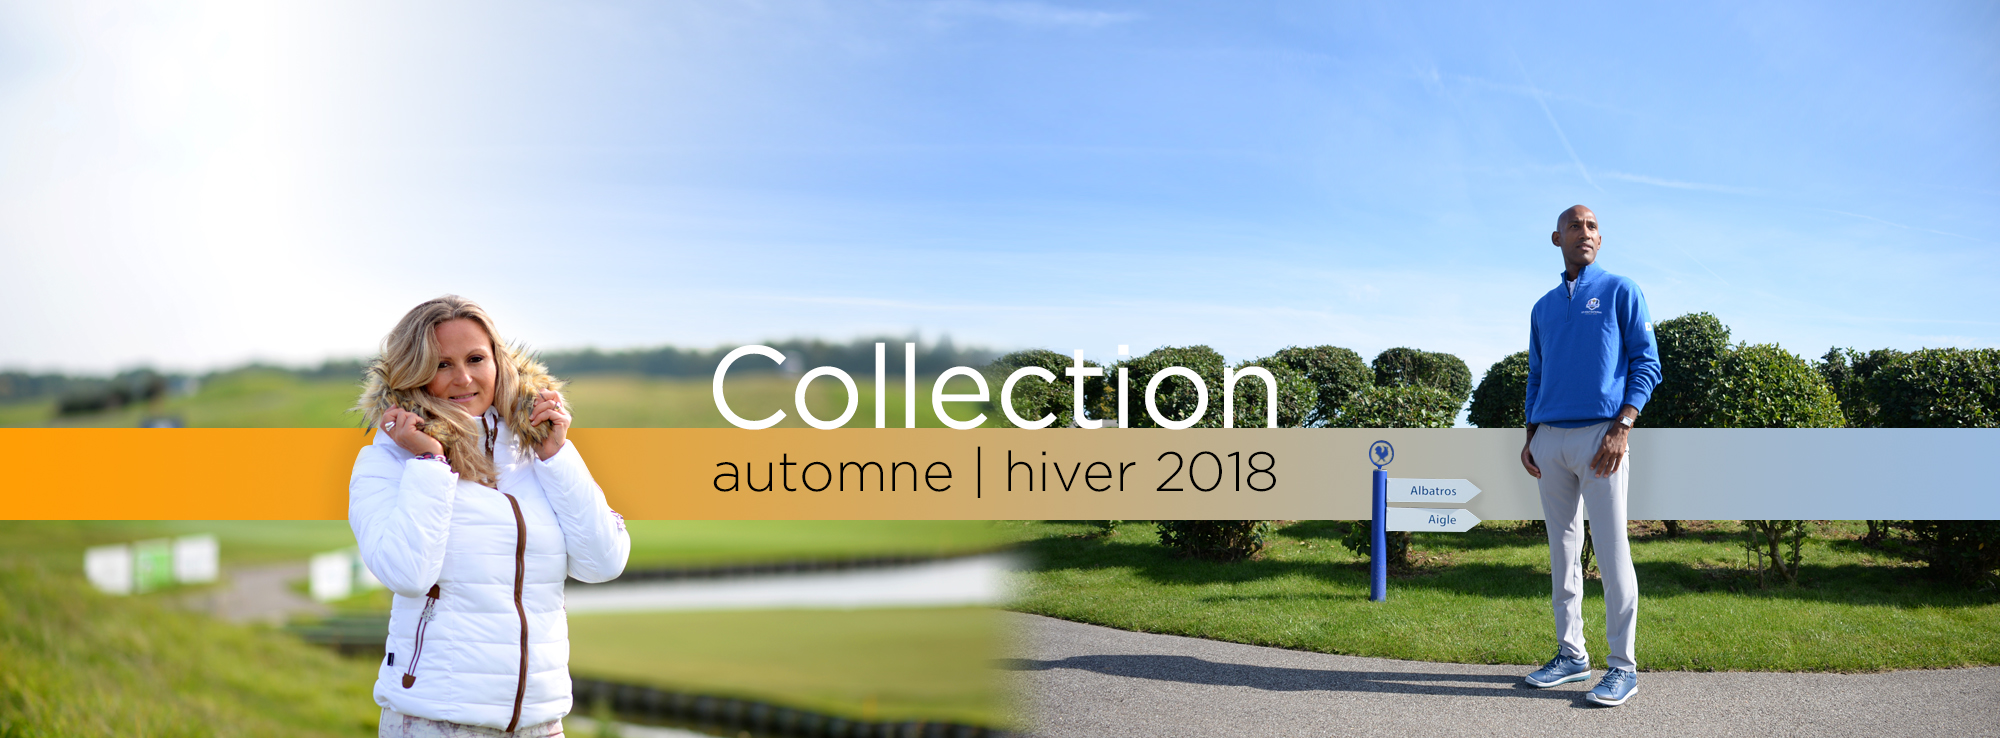 Collection automne hiver 2018